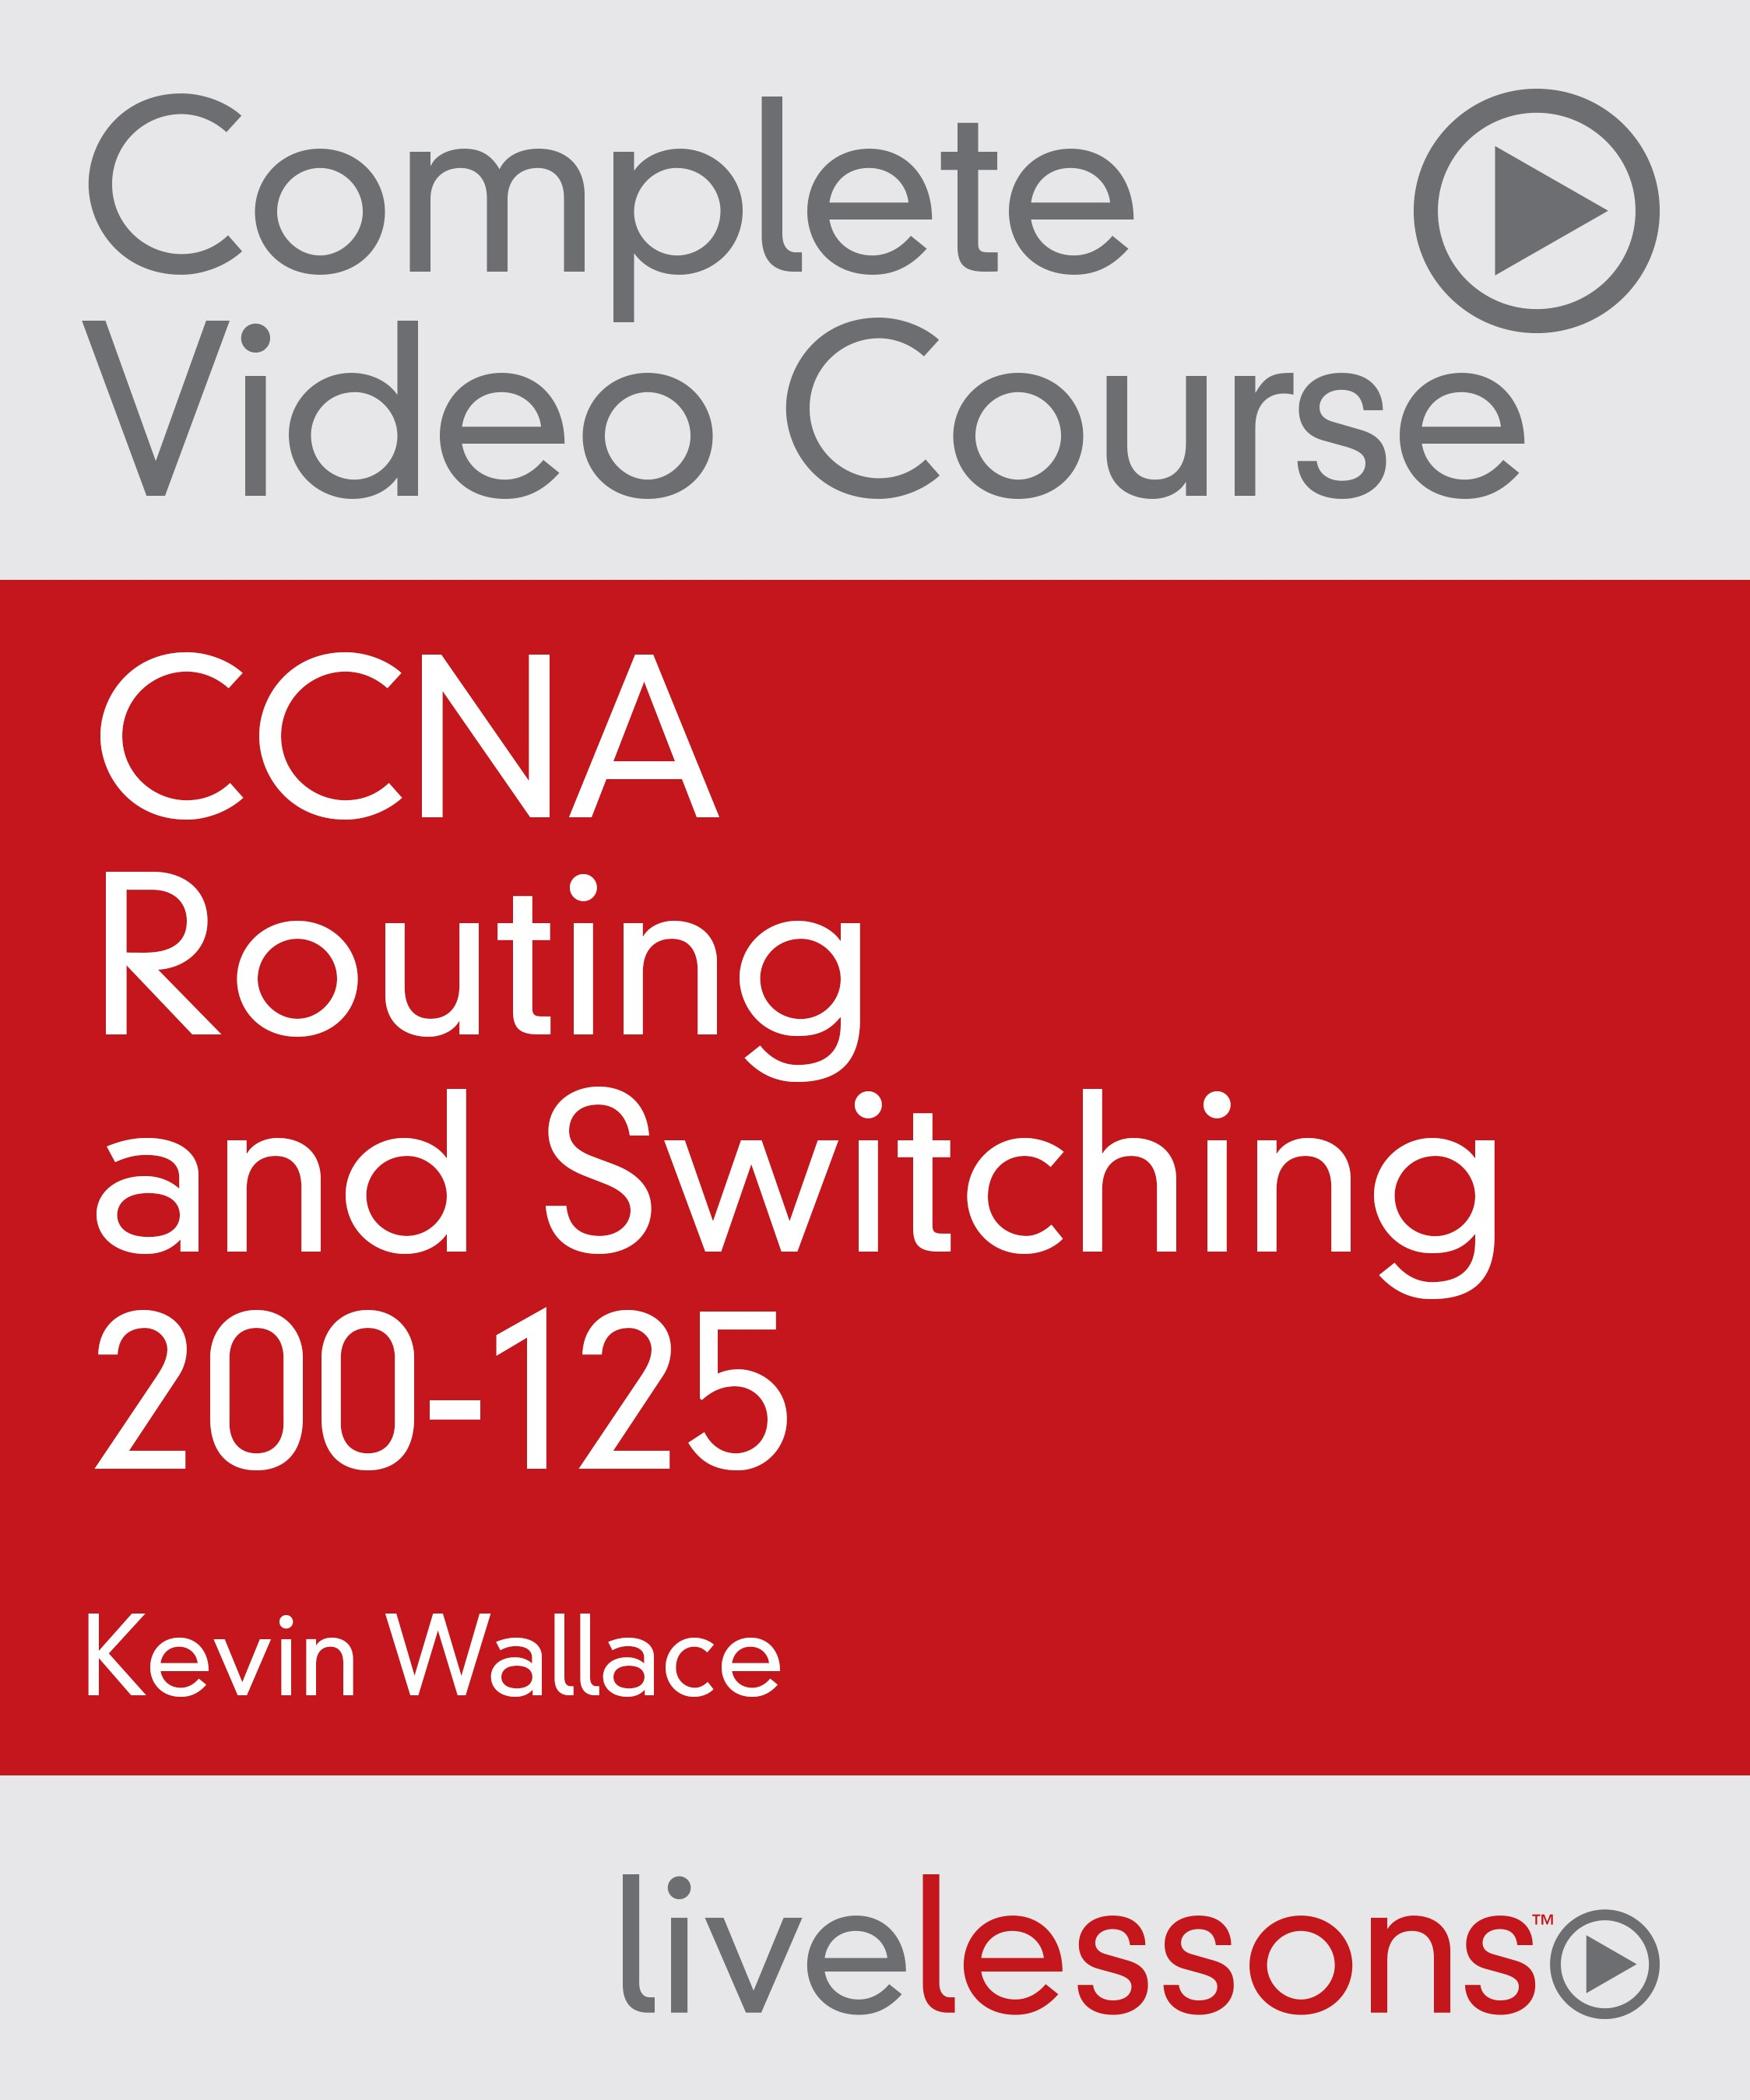 CCNA Routing and Switching 200-125 Complete Video Course with Practice Tests